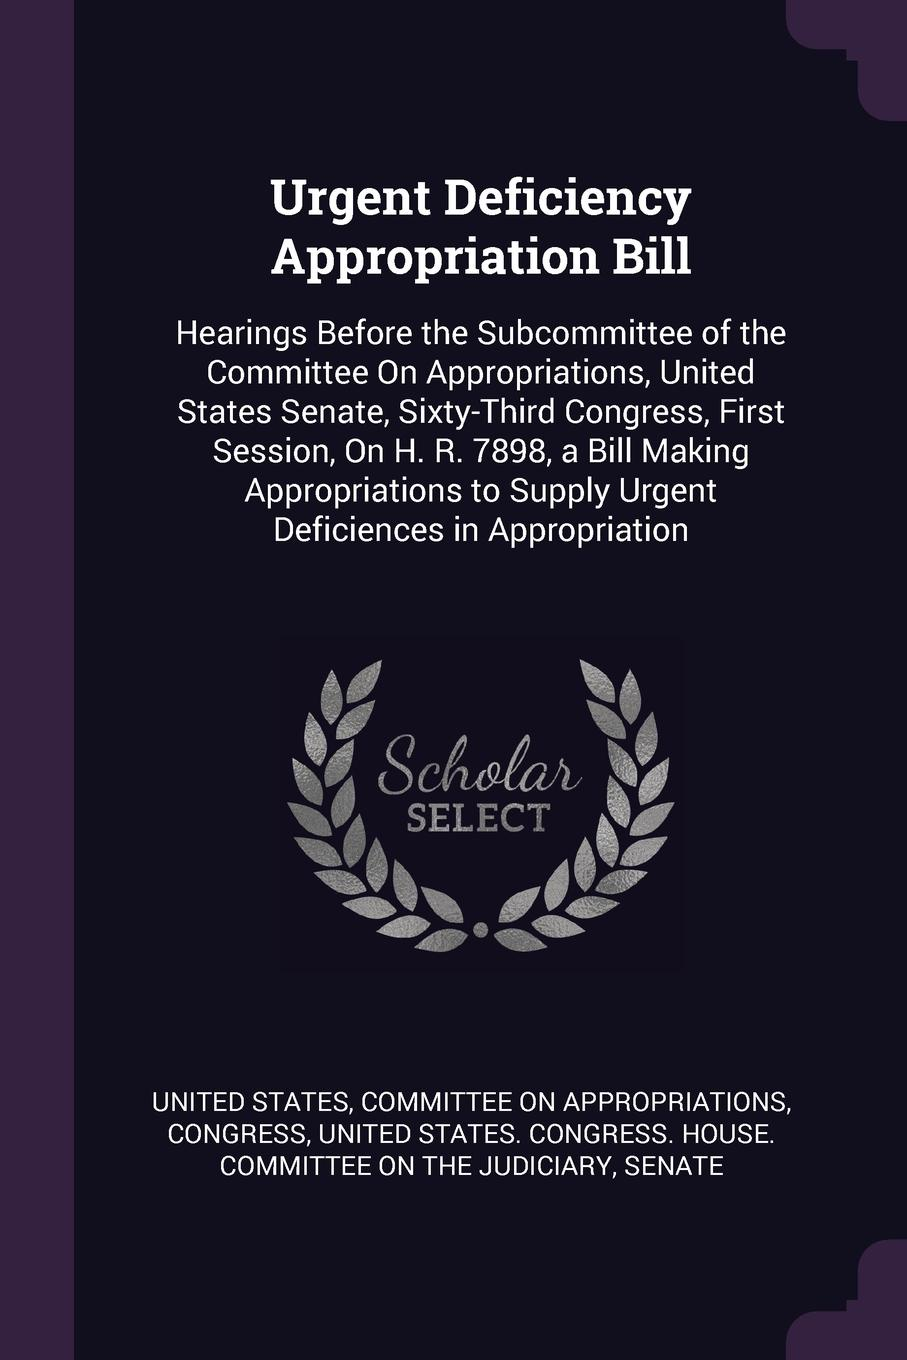 """Urgent Deficiency Appropriation Bill. Hearings Before the Subcommittee of the Committee On Appropriations, United States Senate, Sixty-Third Congress, First Session, On H. R. 7898, a Bill Making Appropriations to Supply Urgent Deficiences in Appro... Книга""""Urgent Deficiency Appropriation Bill. Hearings Before..."""